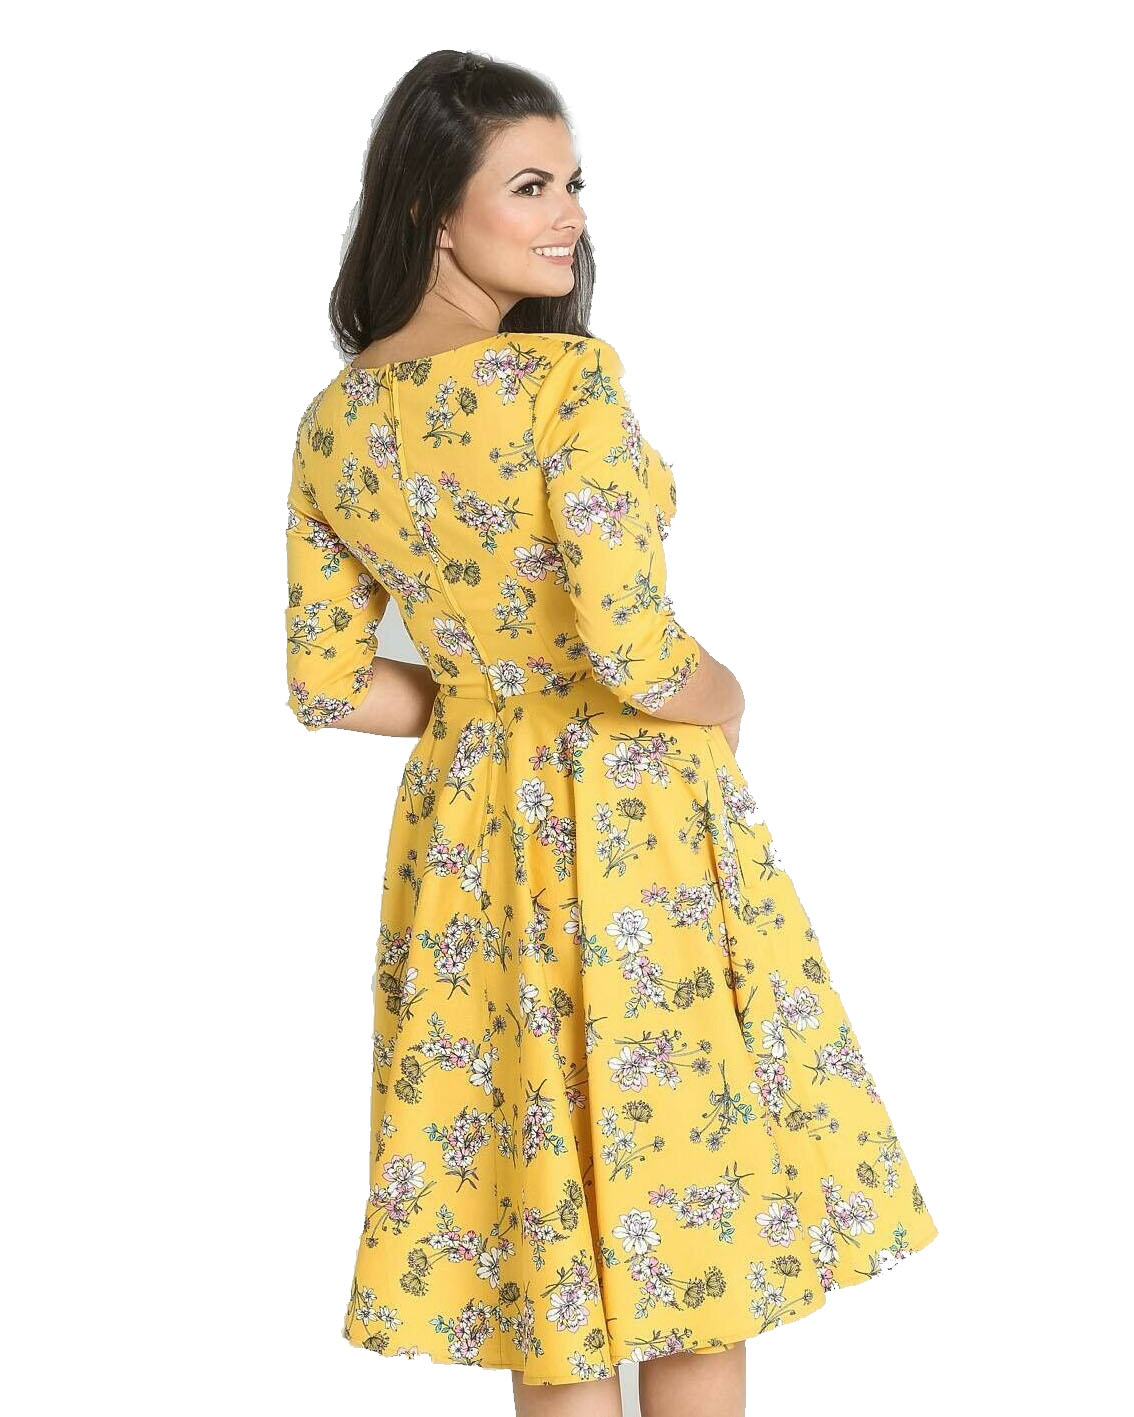 Hell-Bunny-40s-50s-Pin-Up-Vintage-Dress-MURIEL-Flowers-Yellow-All-Sizes thumbnail 5